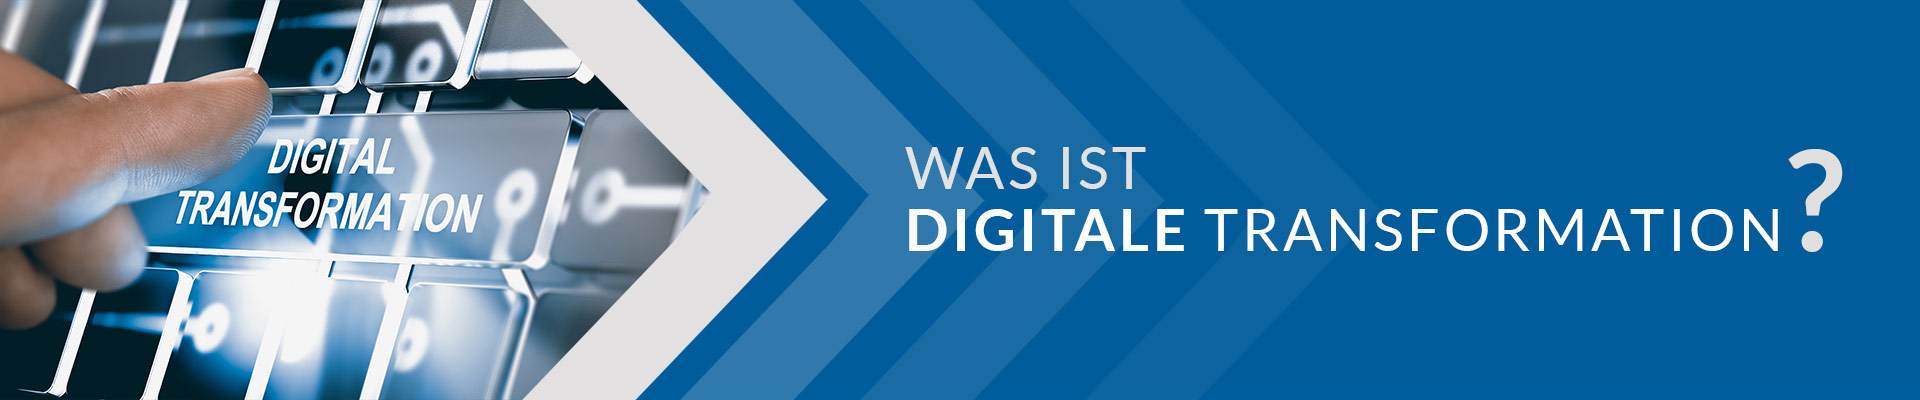 Was ist digitale Transformation